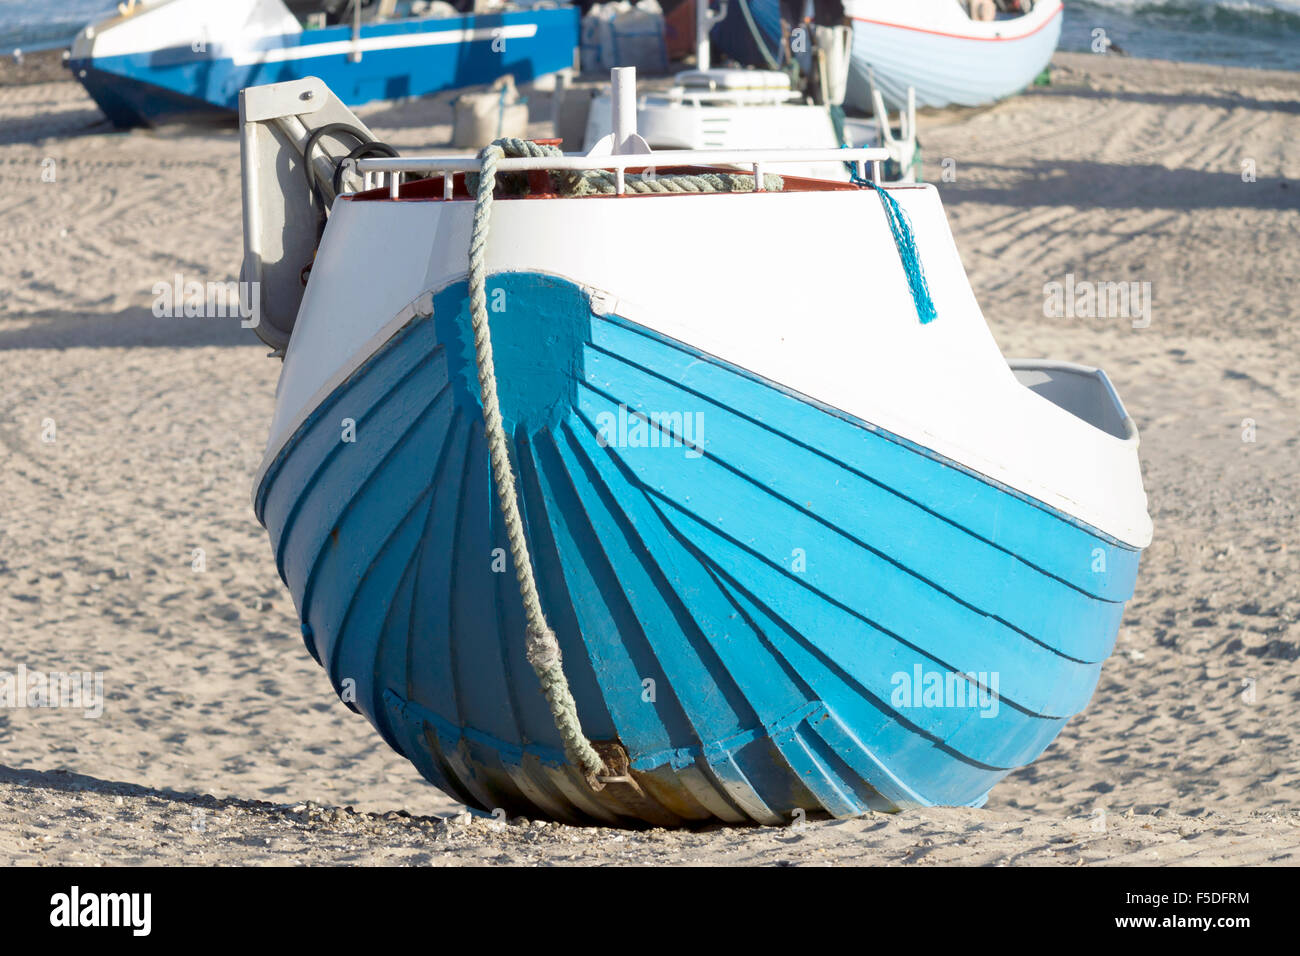 Fishing boat on the beach in Denmark Stock Photo